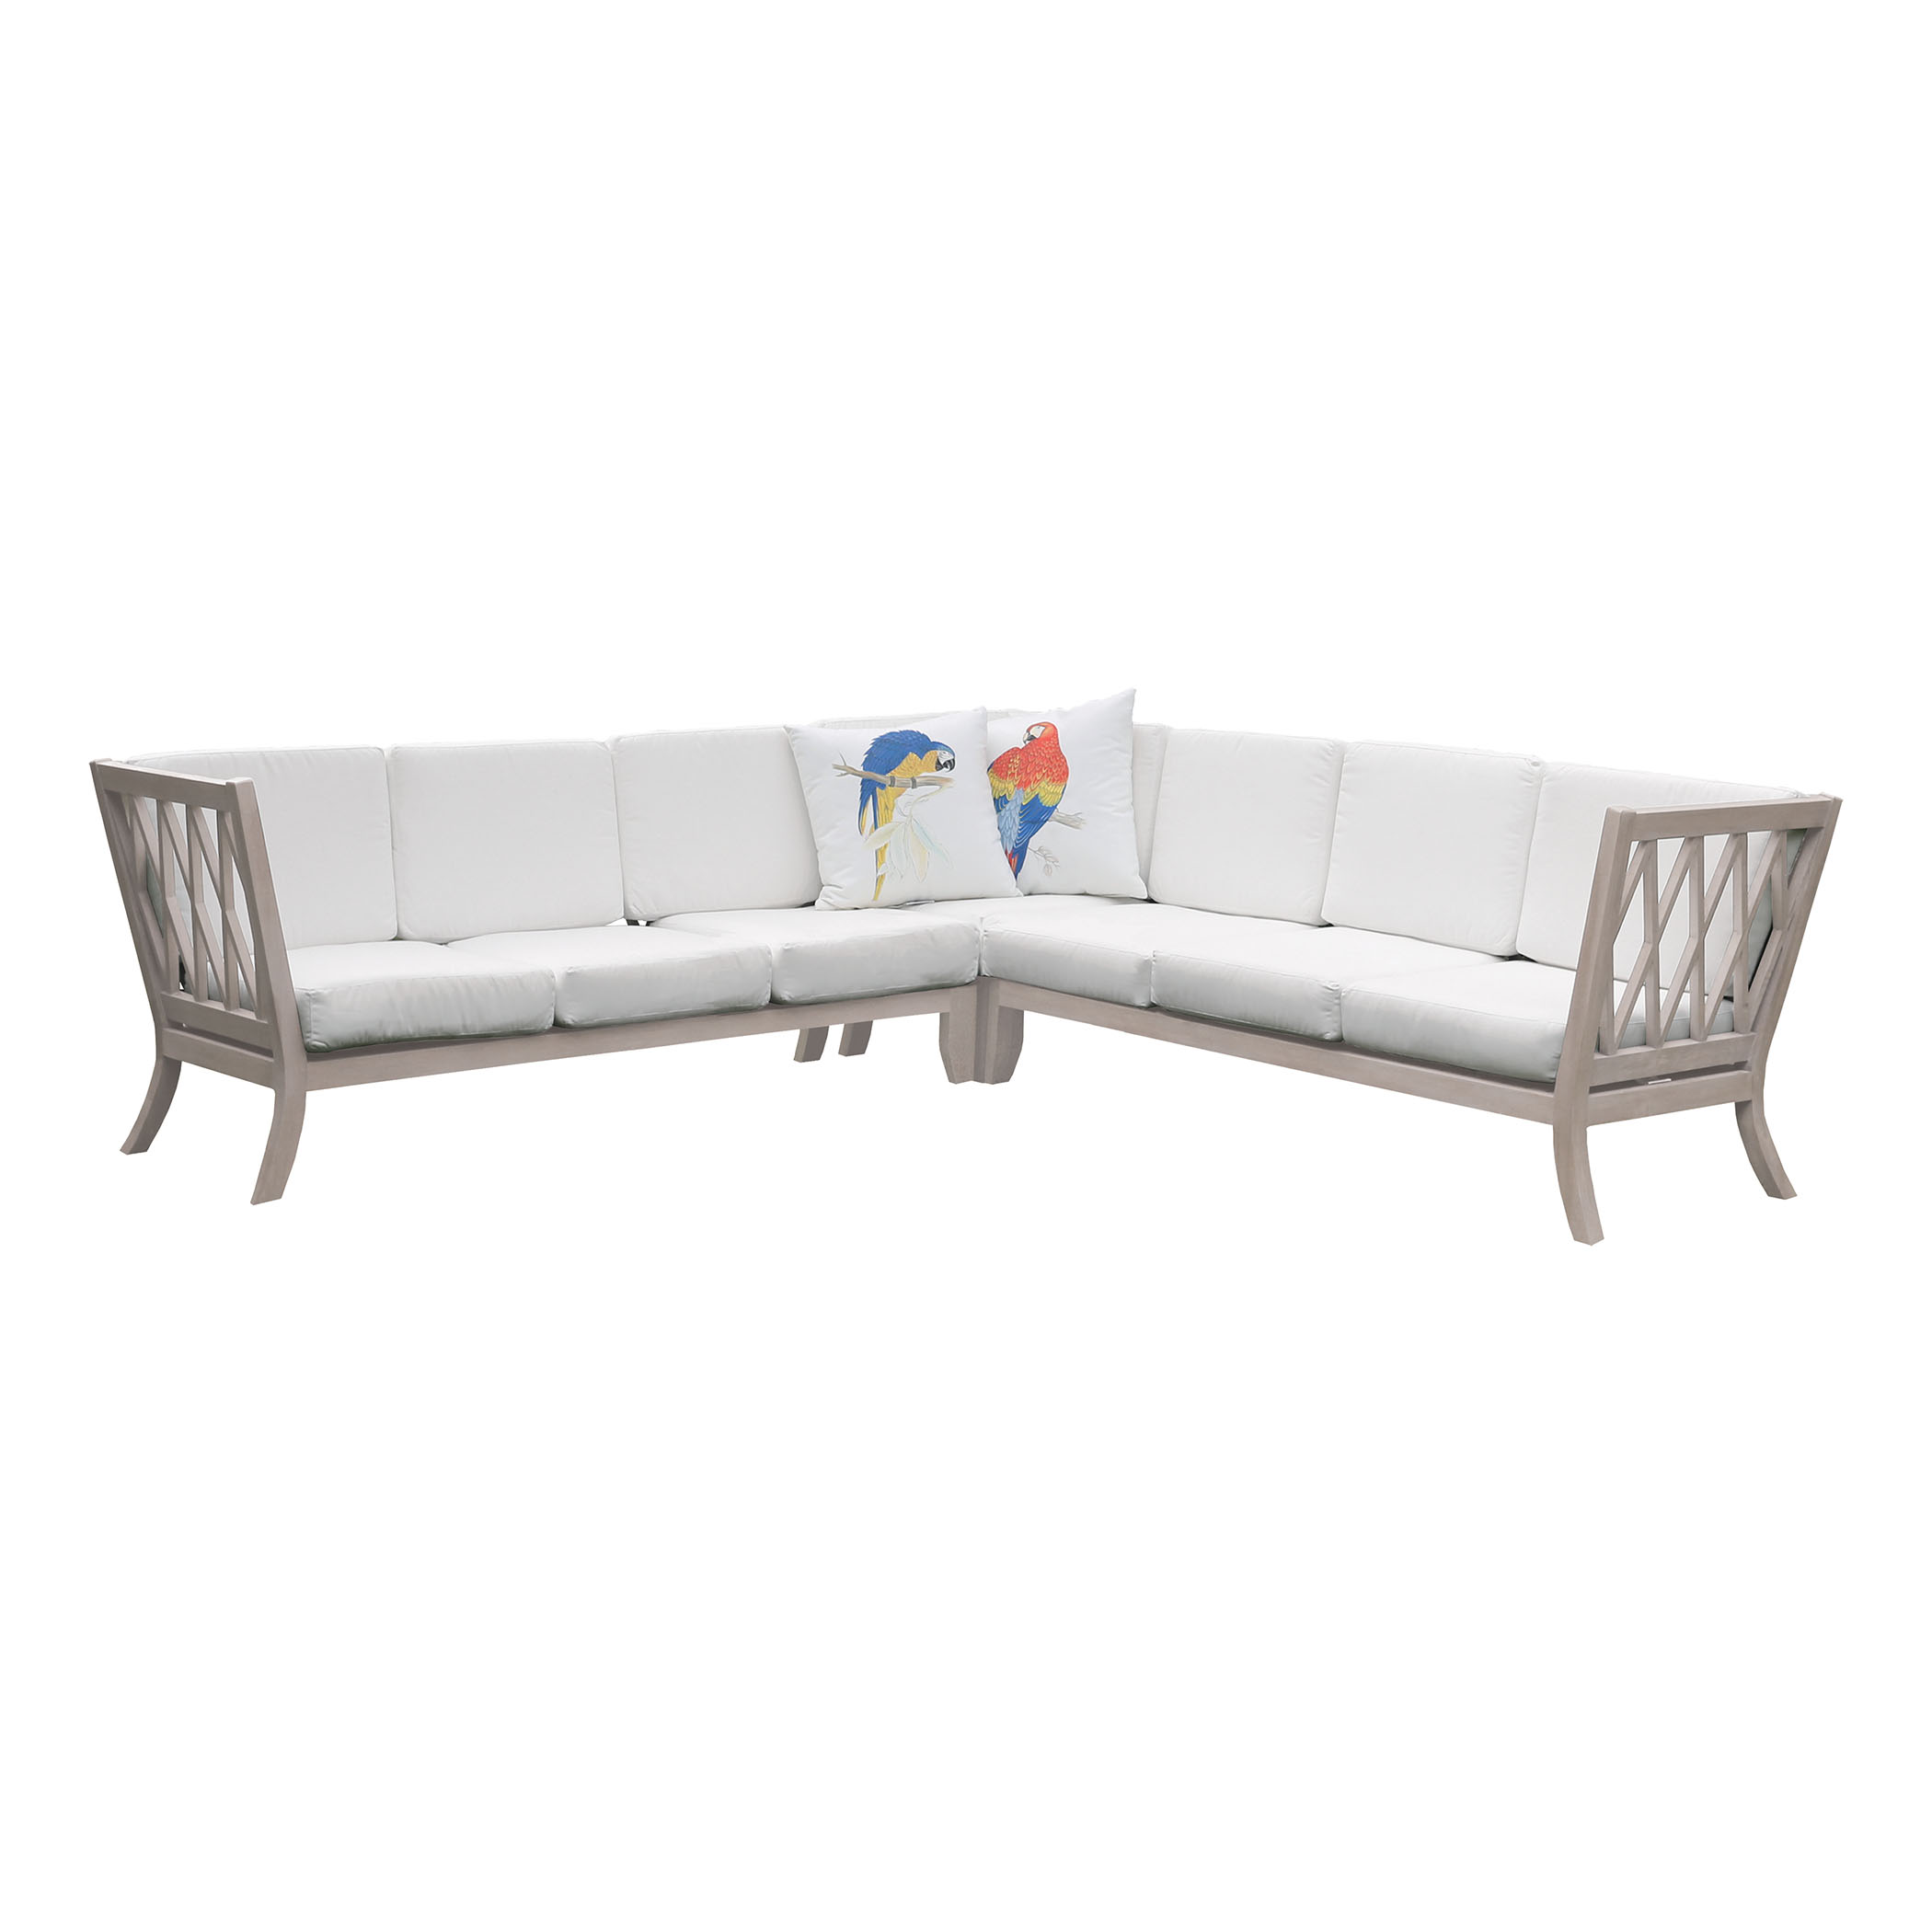 Hilton Outdoor Sectional 6518009S-HT | ELK Home